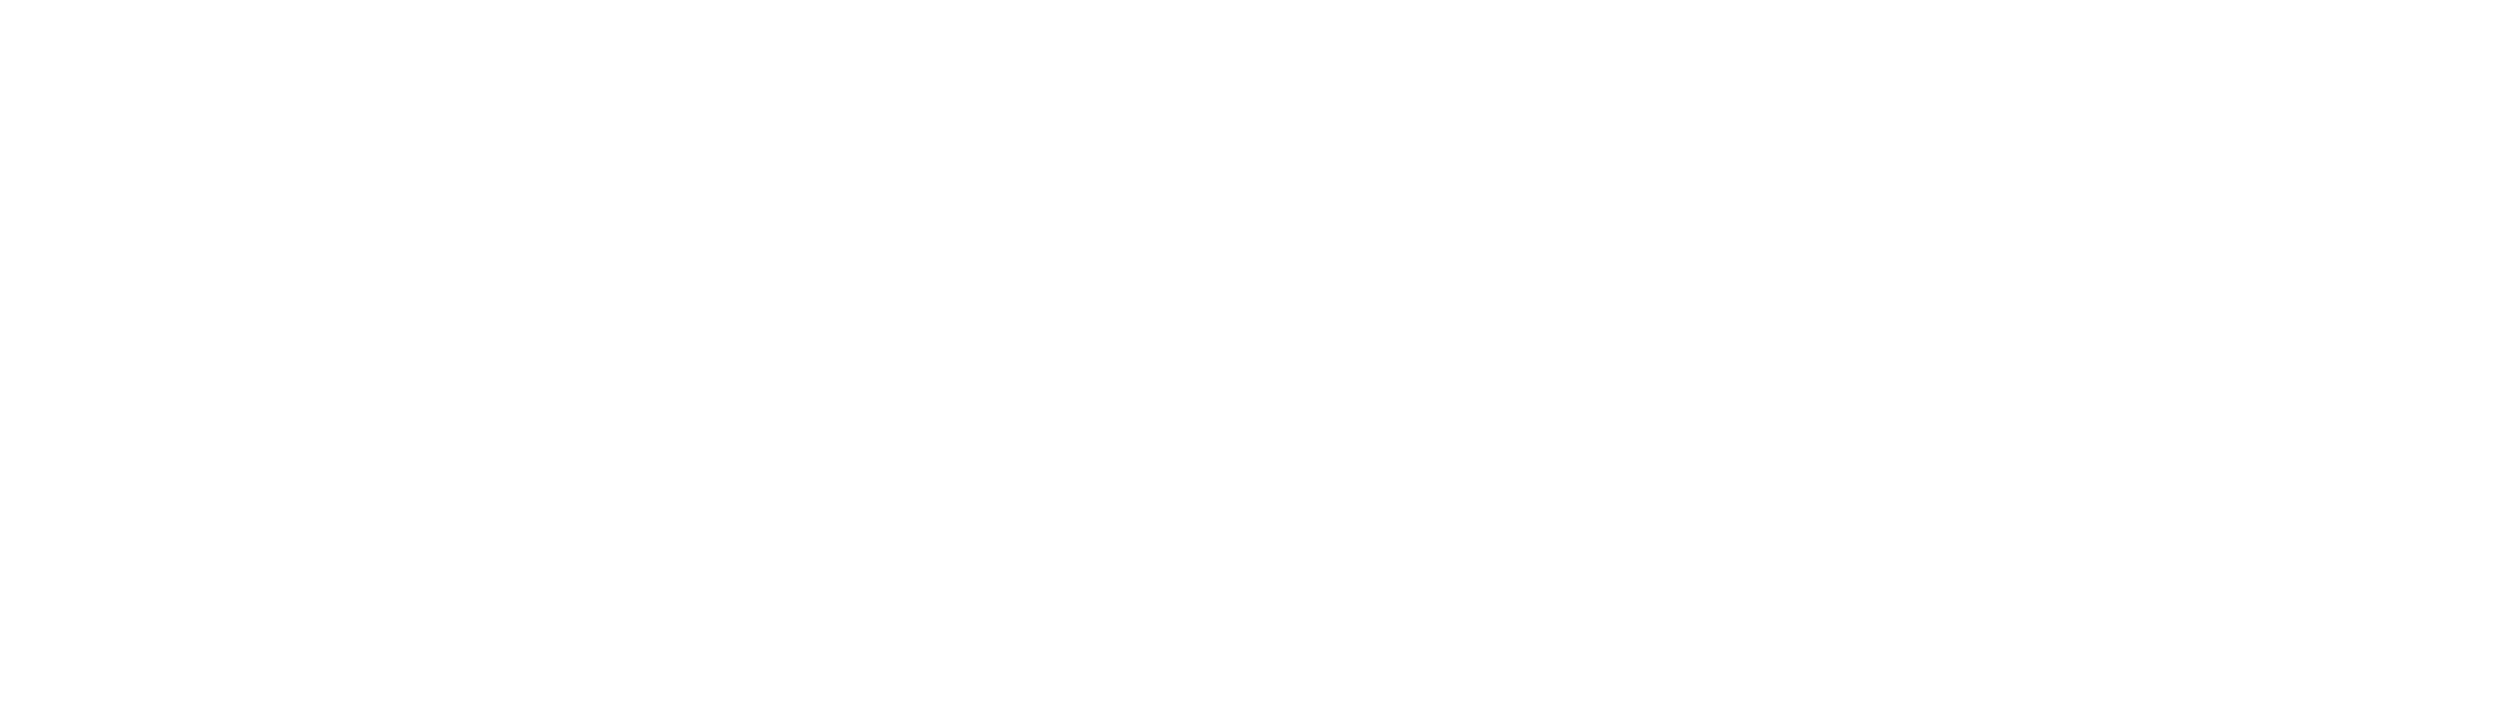 OFFICIALSELECTION-SS.png